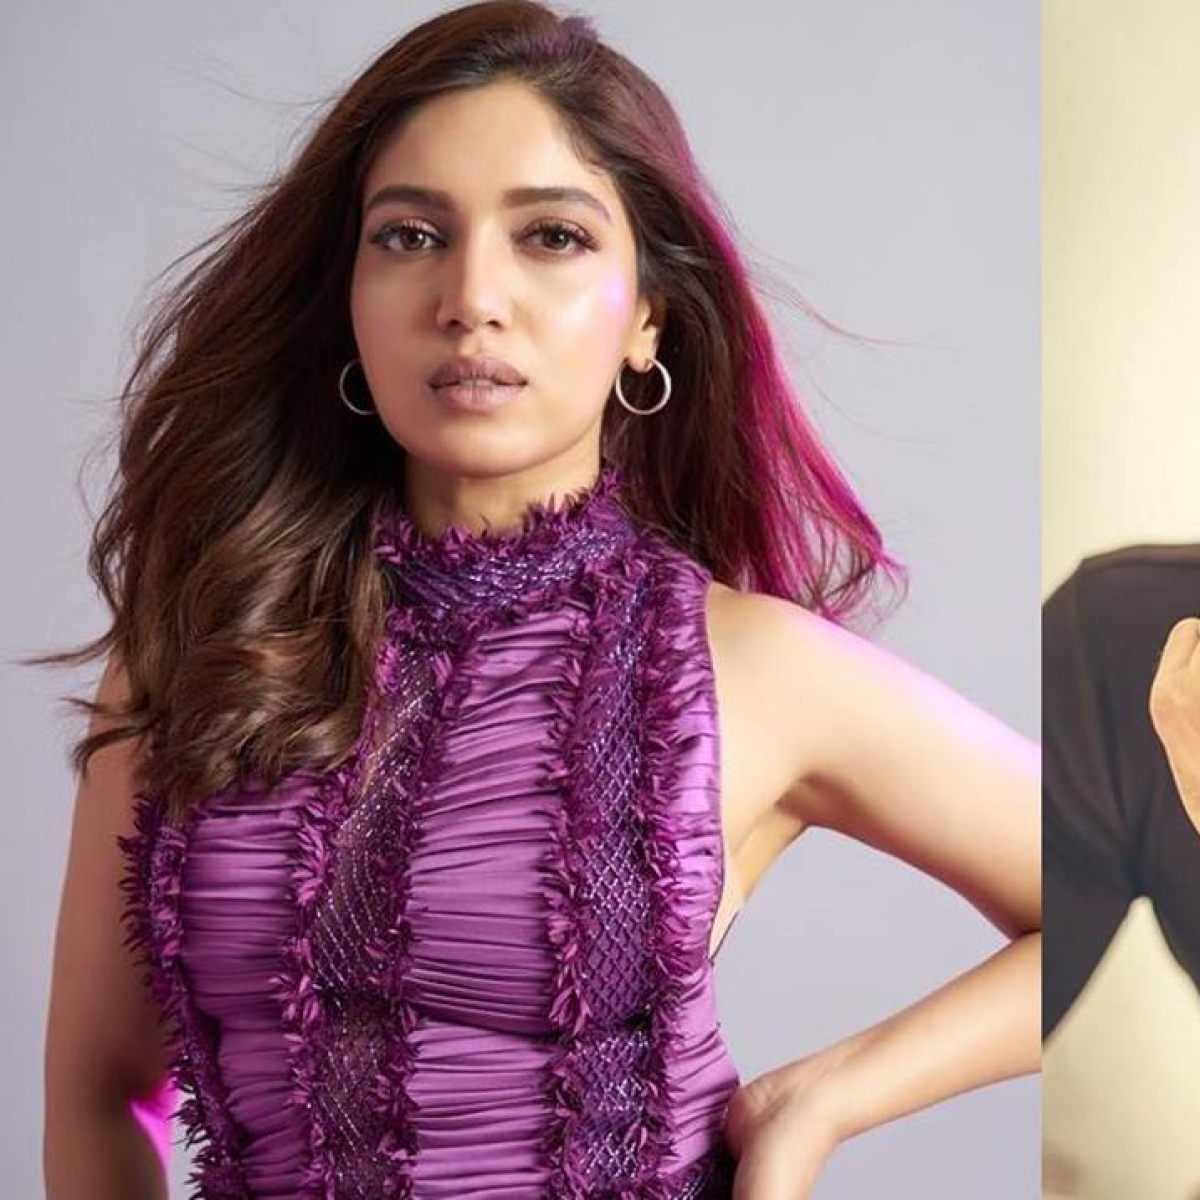 'He will have some great hacks': Bhumi Pednekar thinks Ranveer Singh would make for a good 'sex upchaar doctor'